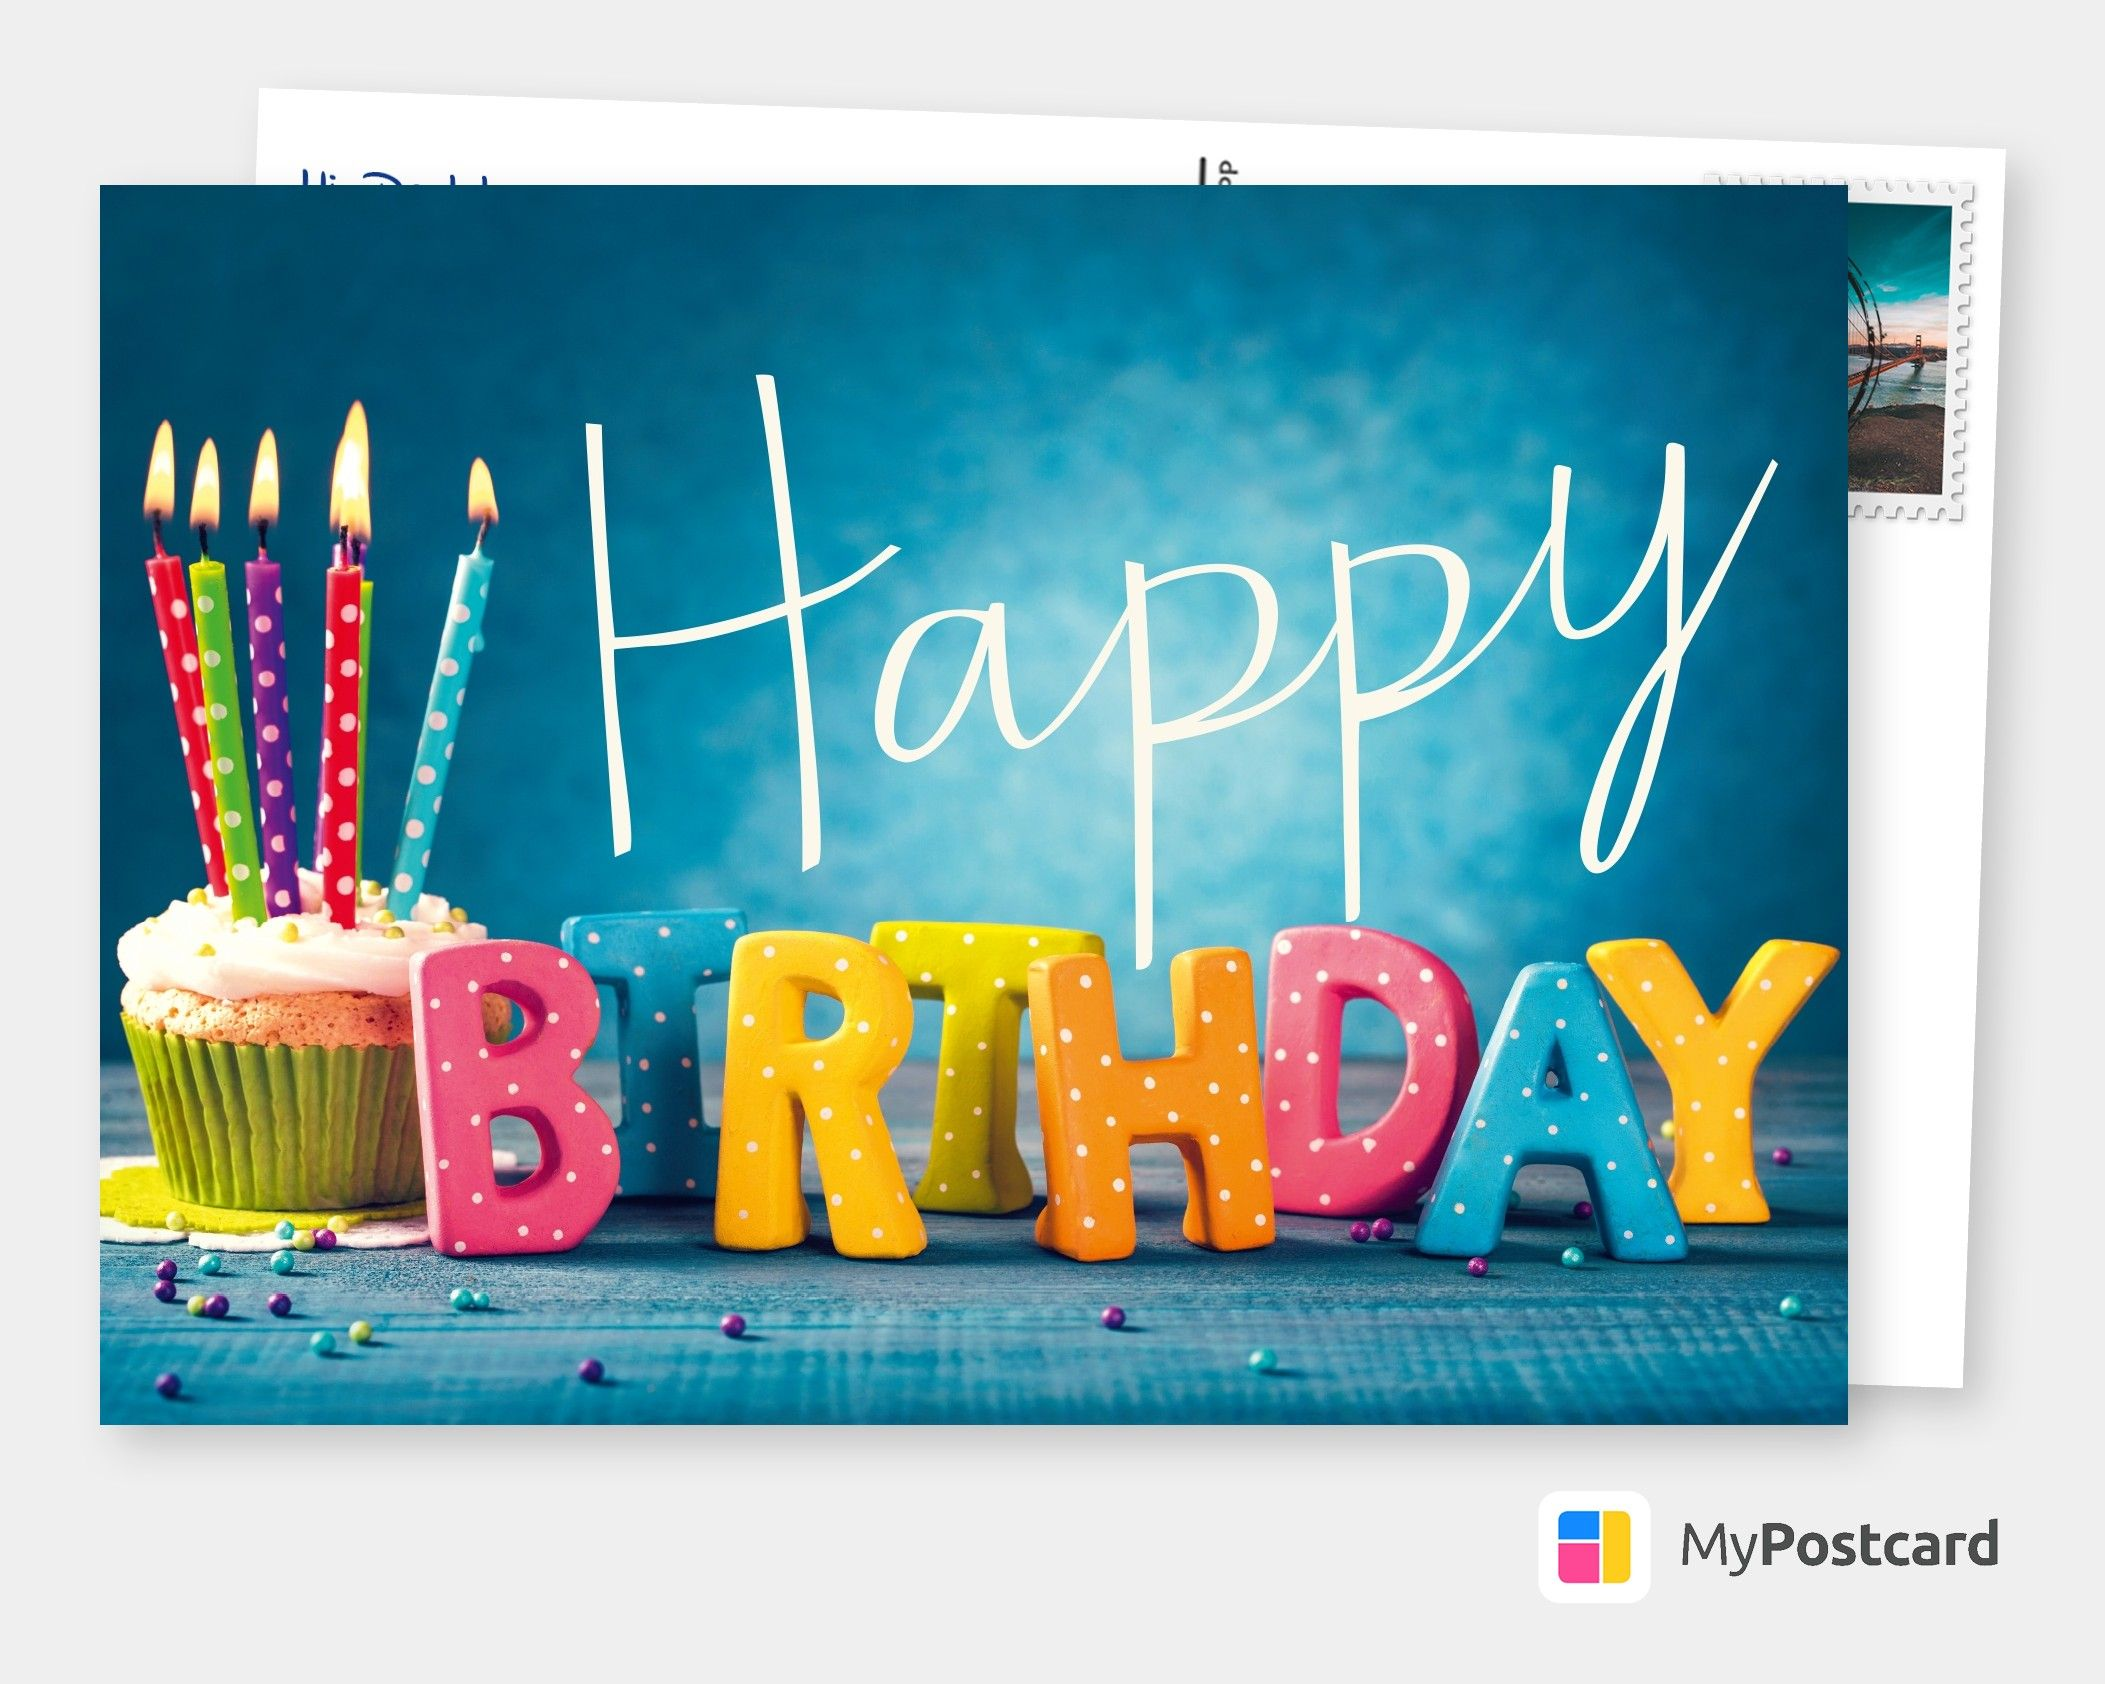 Personalized Birthday Cards Printed Mailed For You Online Service Birthday Cards Send Online Customized Cards In 2021 Happy Birthday Wishes Cards Happy Birthday Cards Happy Birthday Cards Printable